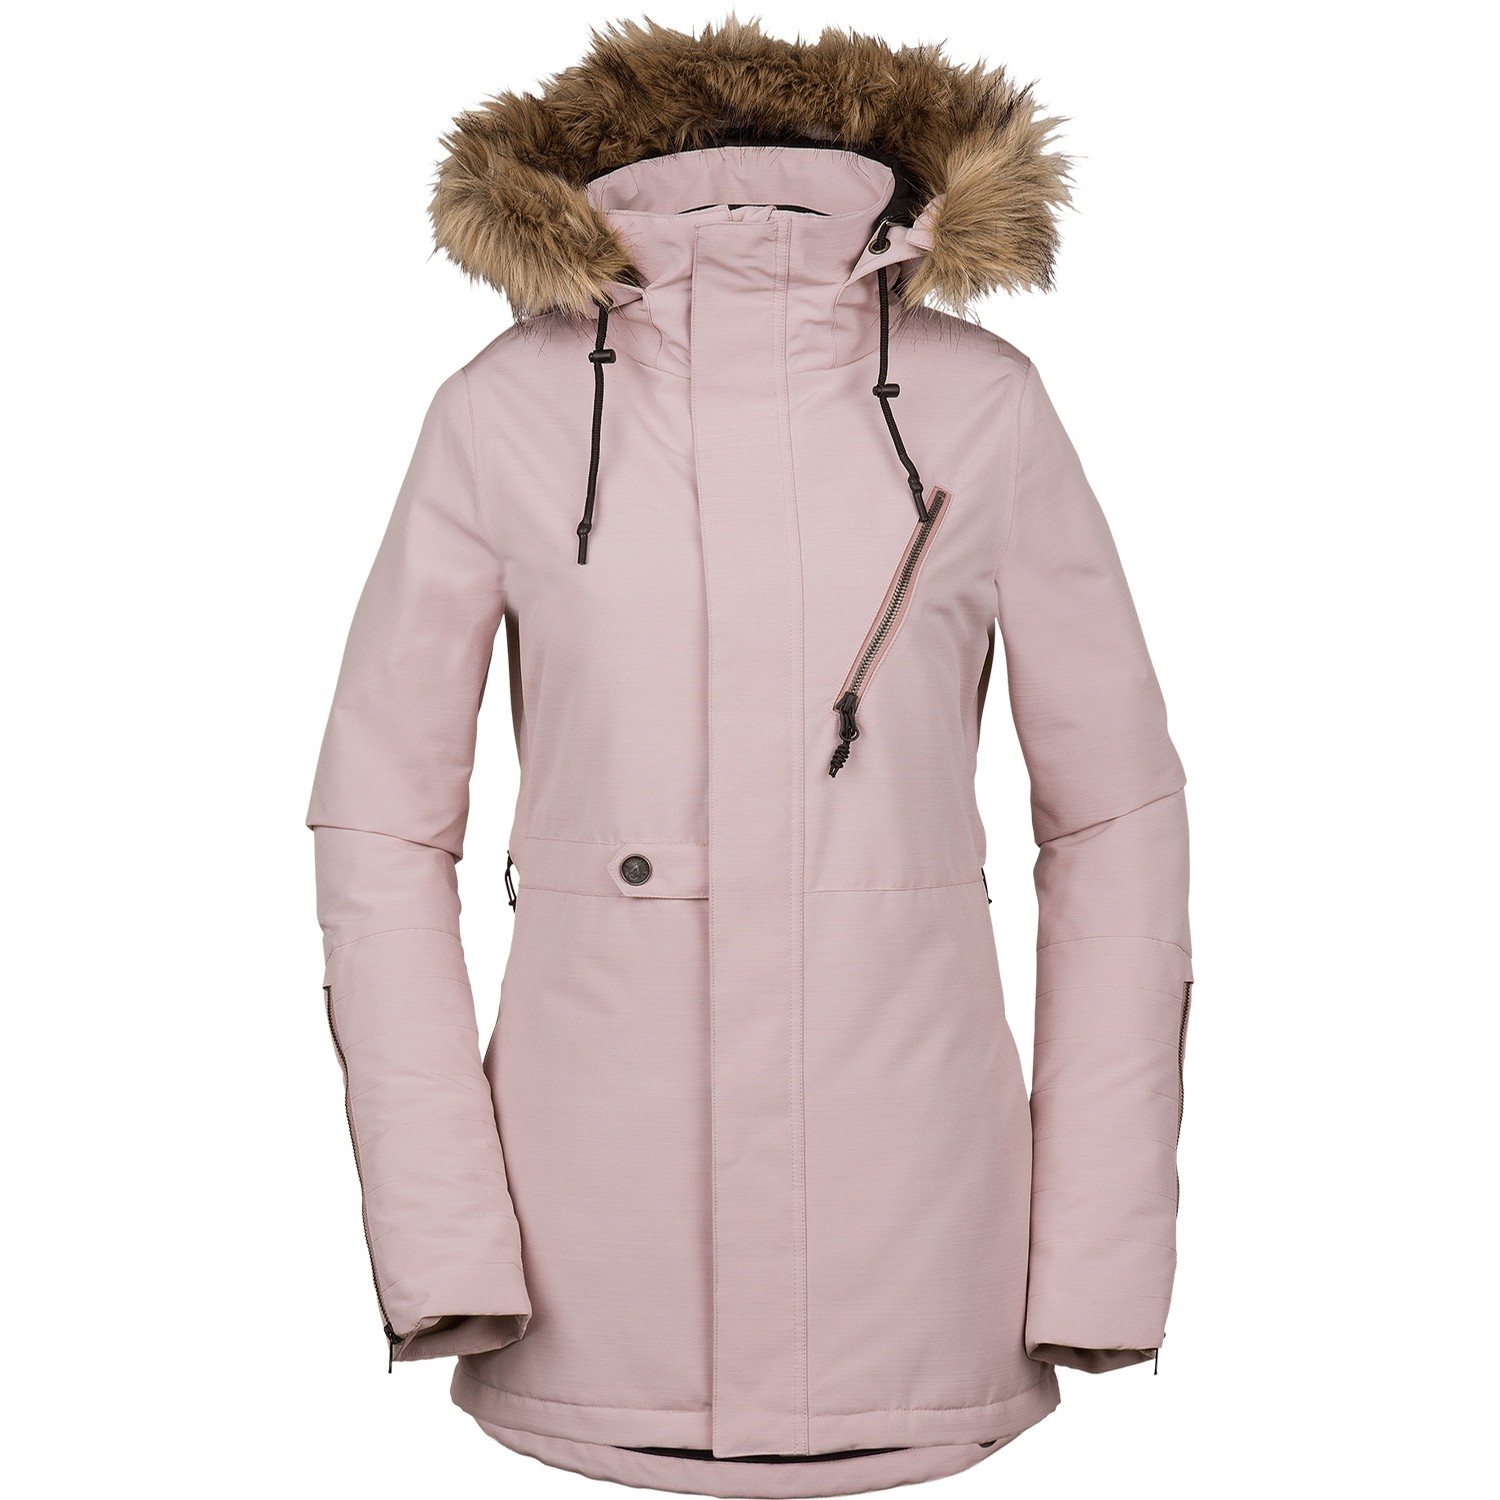 Womens Fawn Insulated Snow Jacket